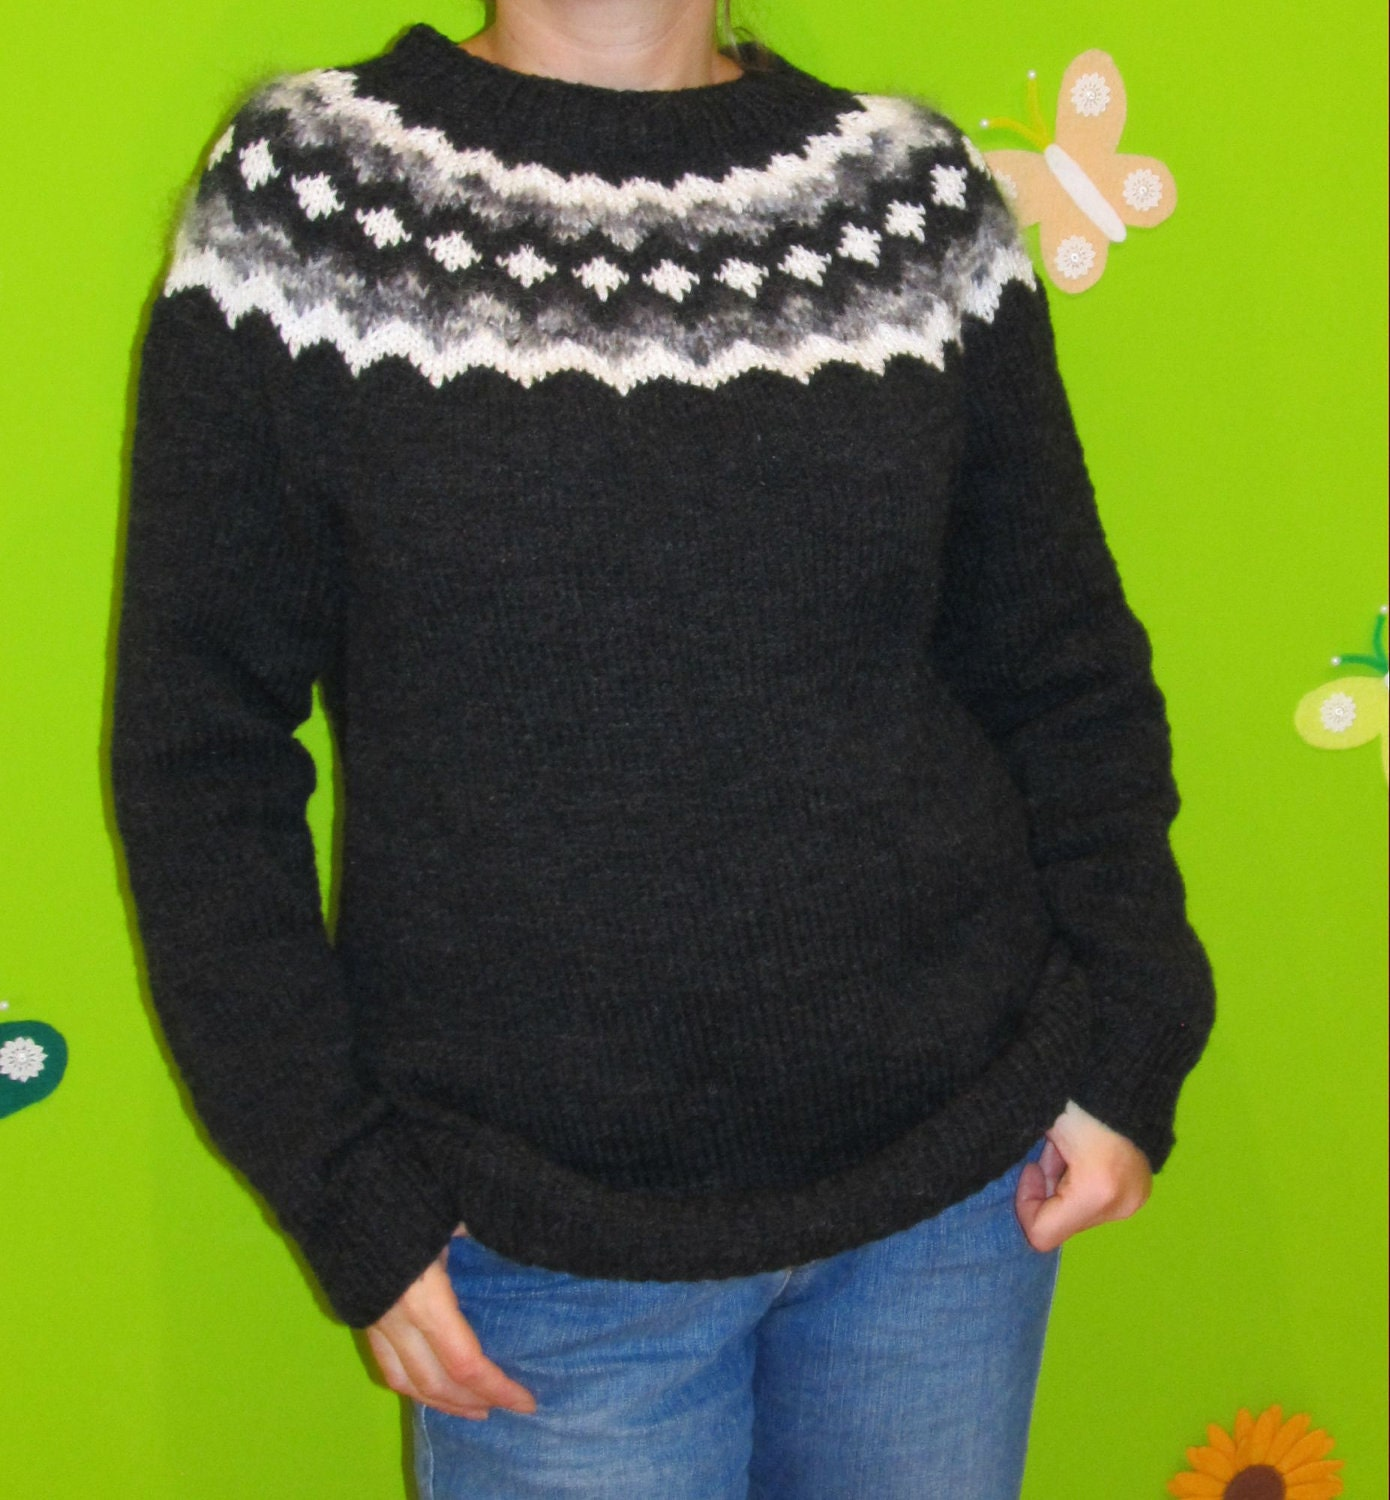 Hand Knit Sweater Patterns : Hand knit sweater with Icelandic pattern by Hladisek on Etsy